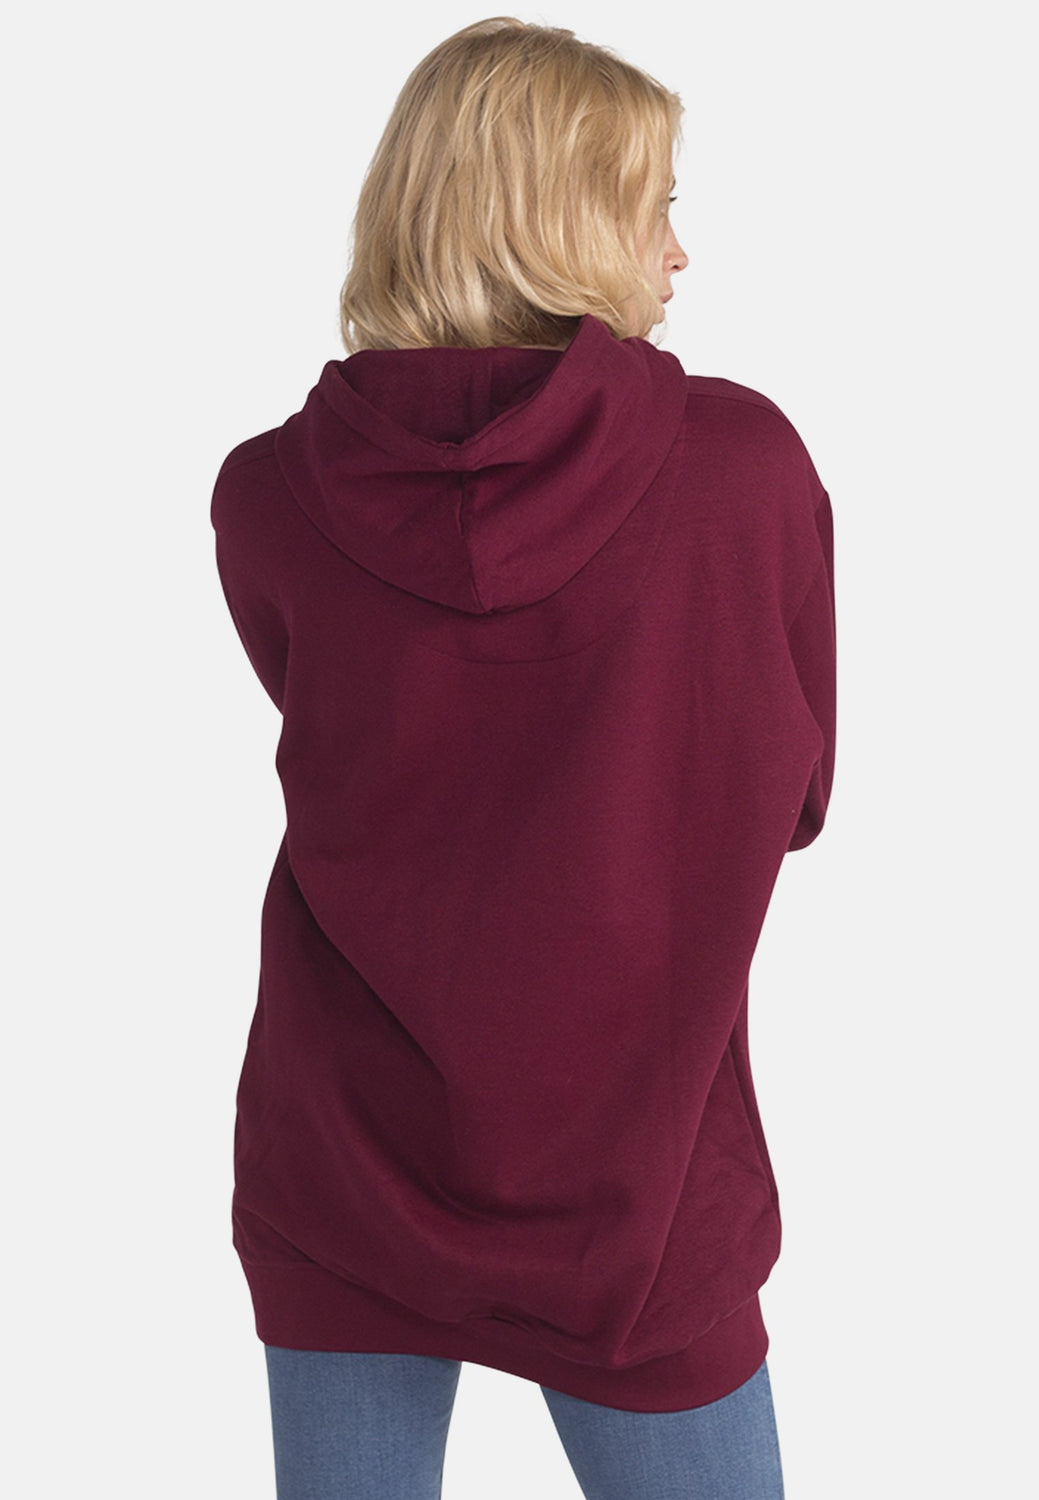 Women's Organic Cotton Hoody in Burgundy - Monkee Genes Organic Jeans Denim - Women's Hoodie Monkee Genes Official  Monkee Genes Official